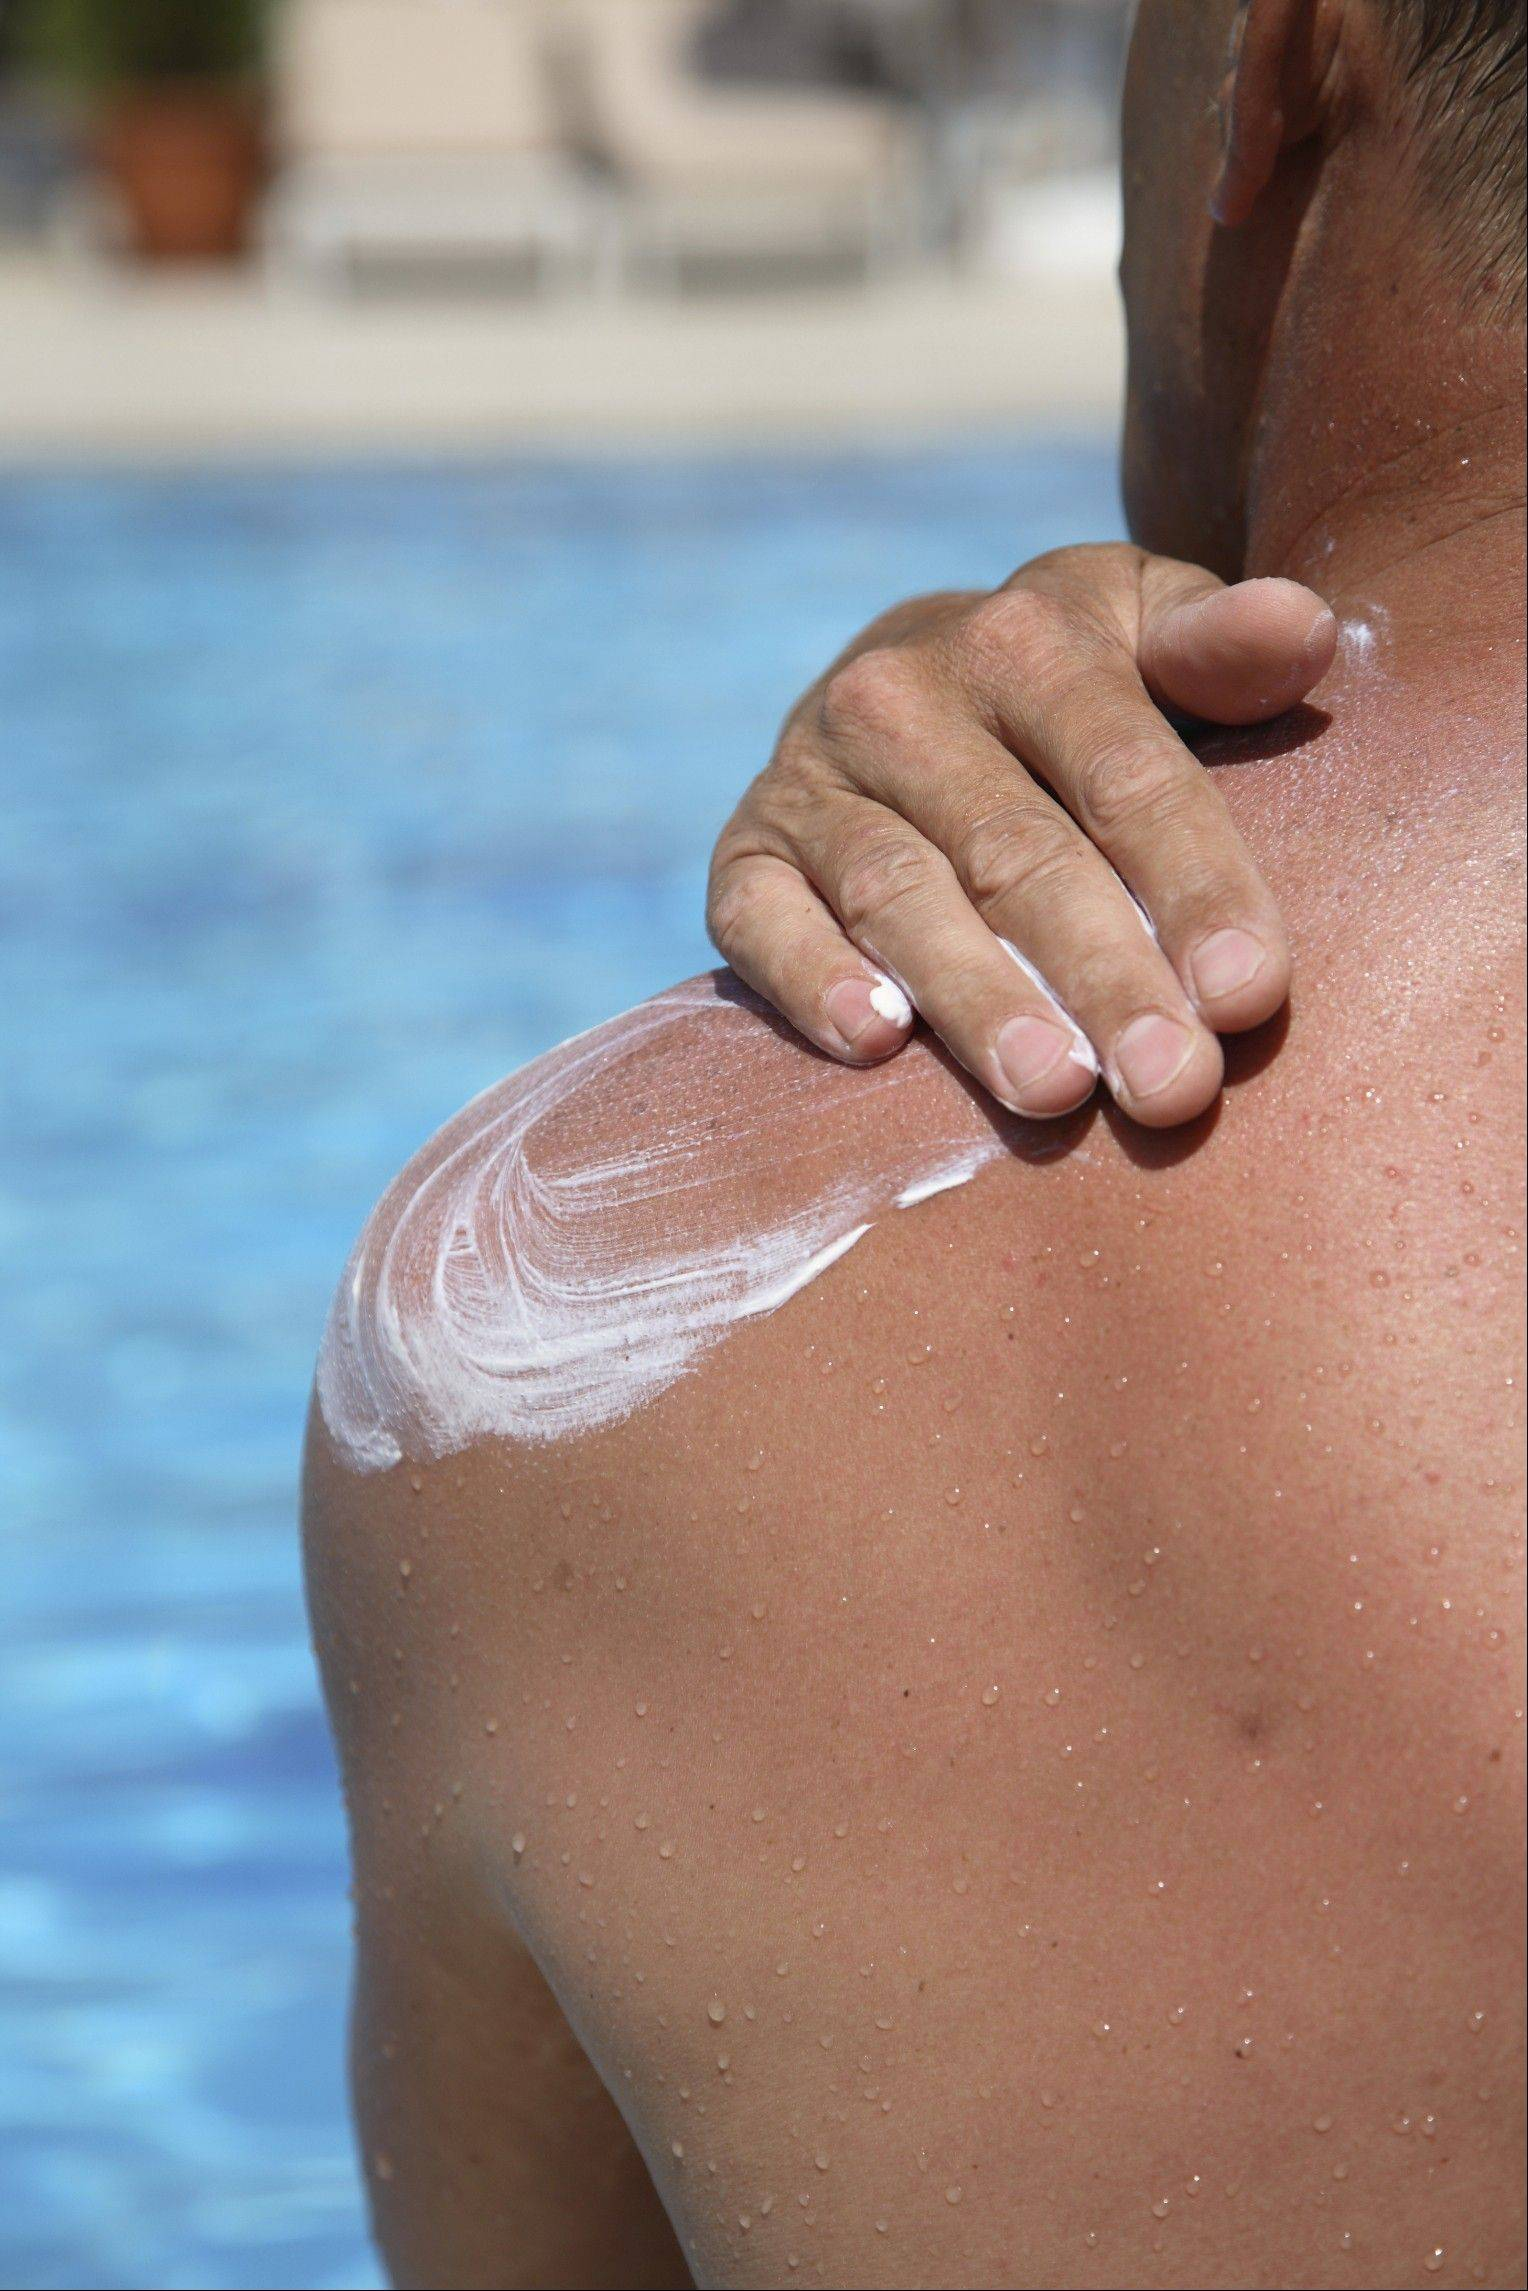 Use sunscreen when outdoors.